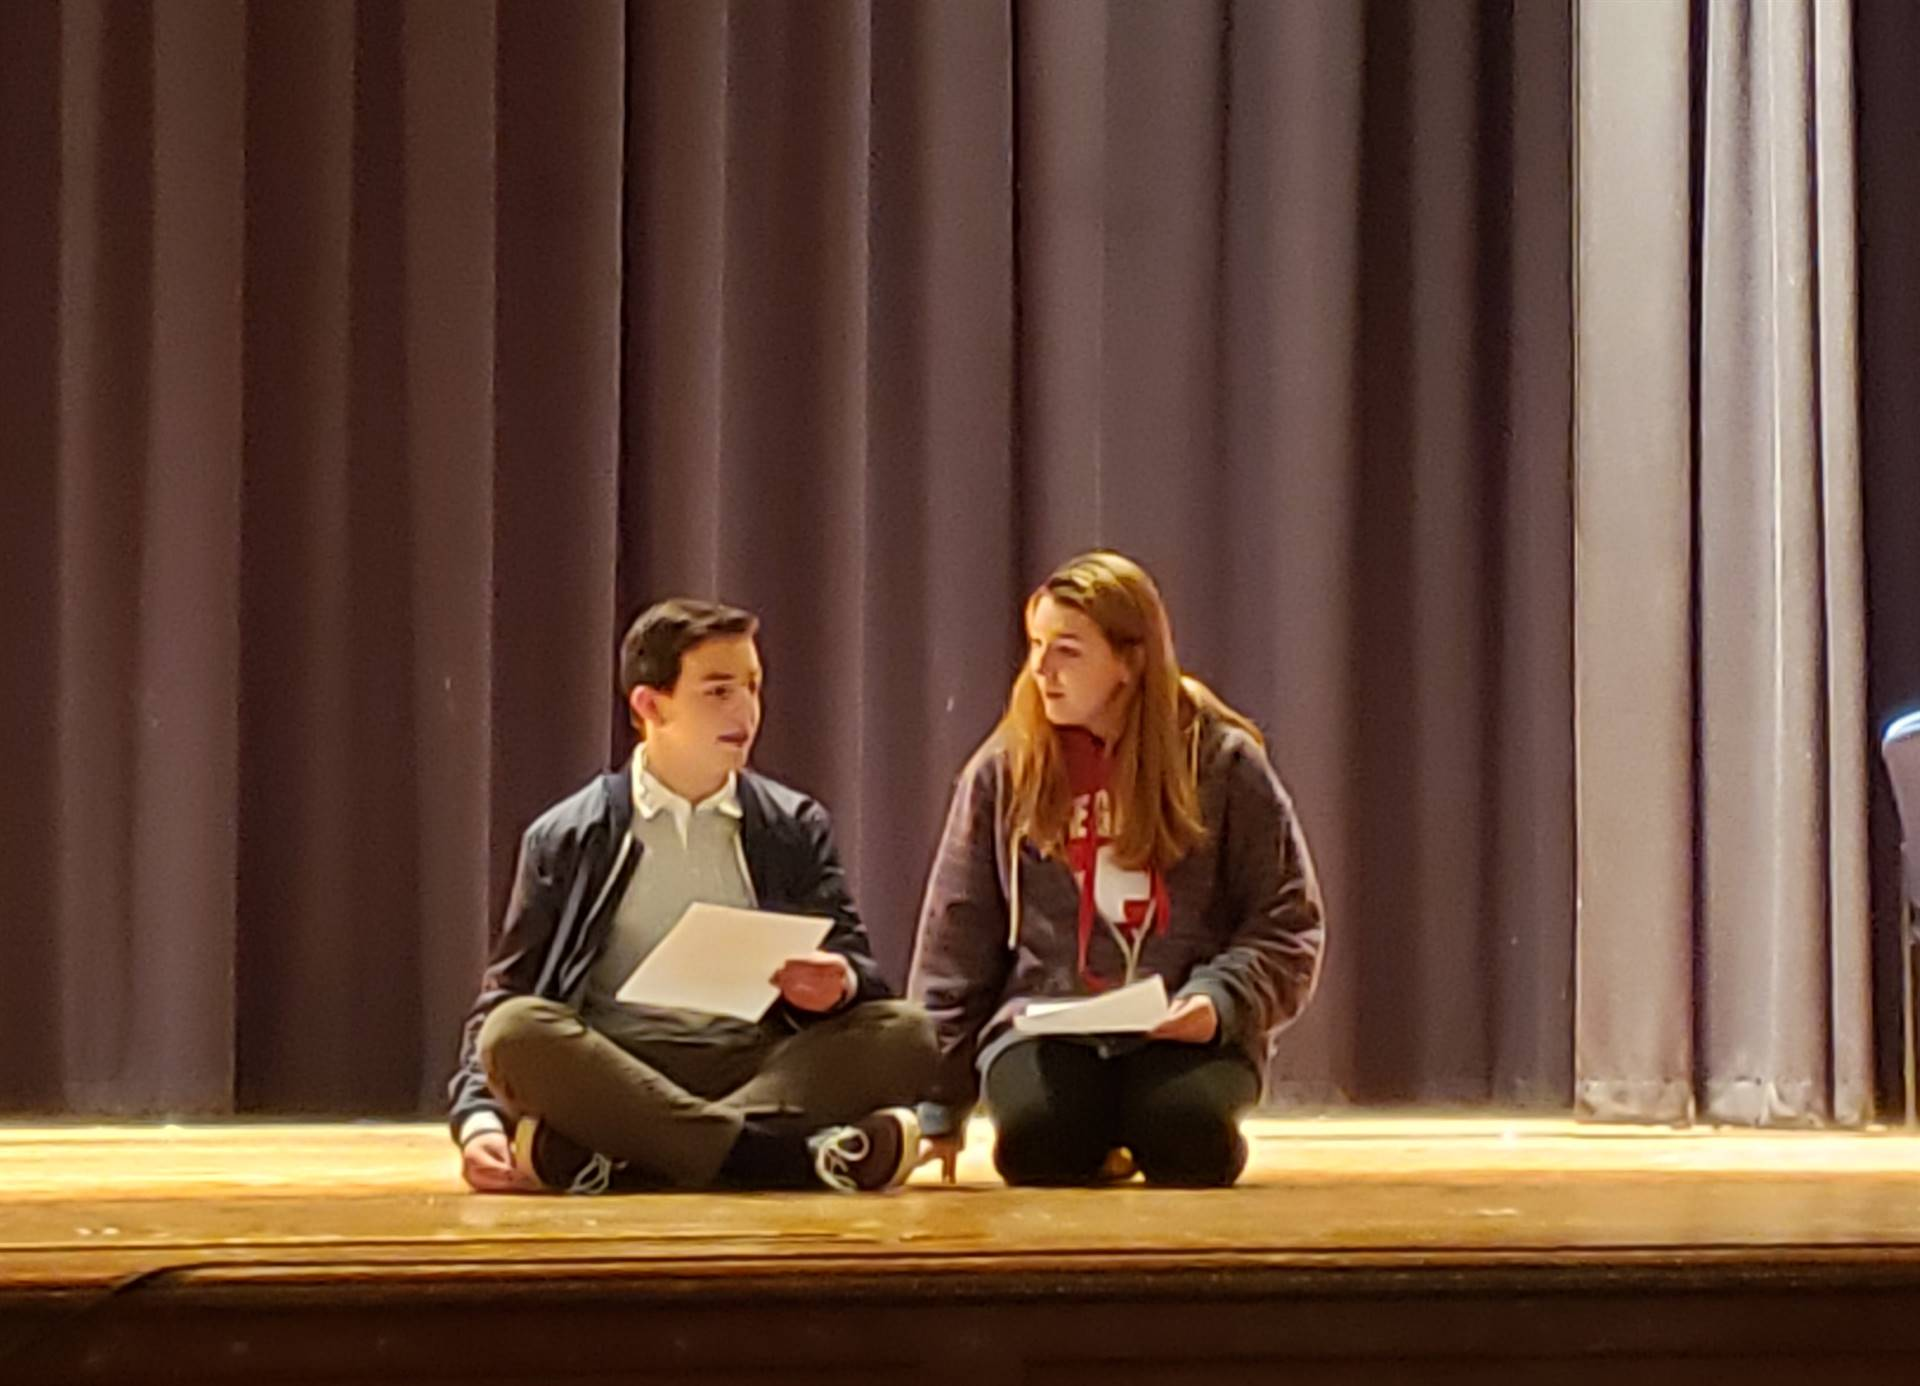 Theatre Arts Students Partake in Partner Scene Work